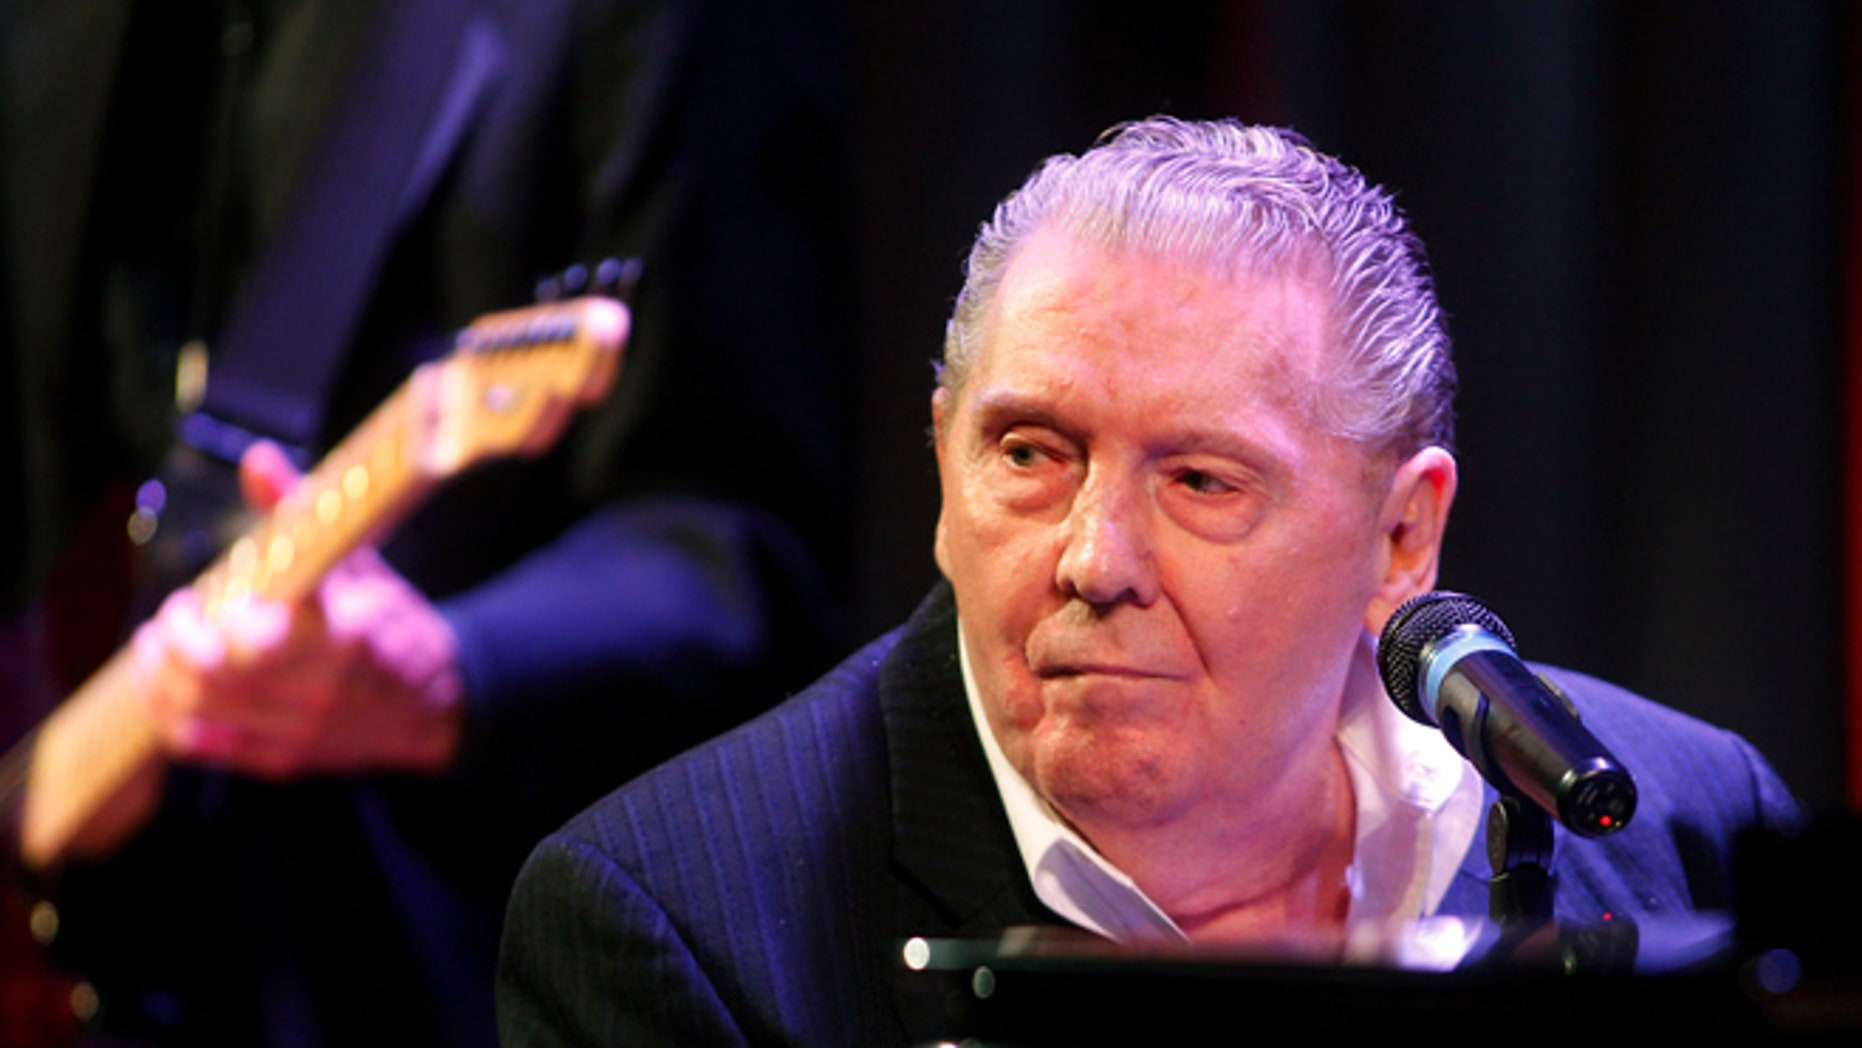 Jerry Lee Lewis is suing his daughter for alleged abuse.